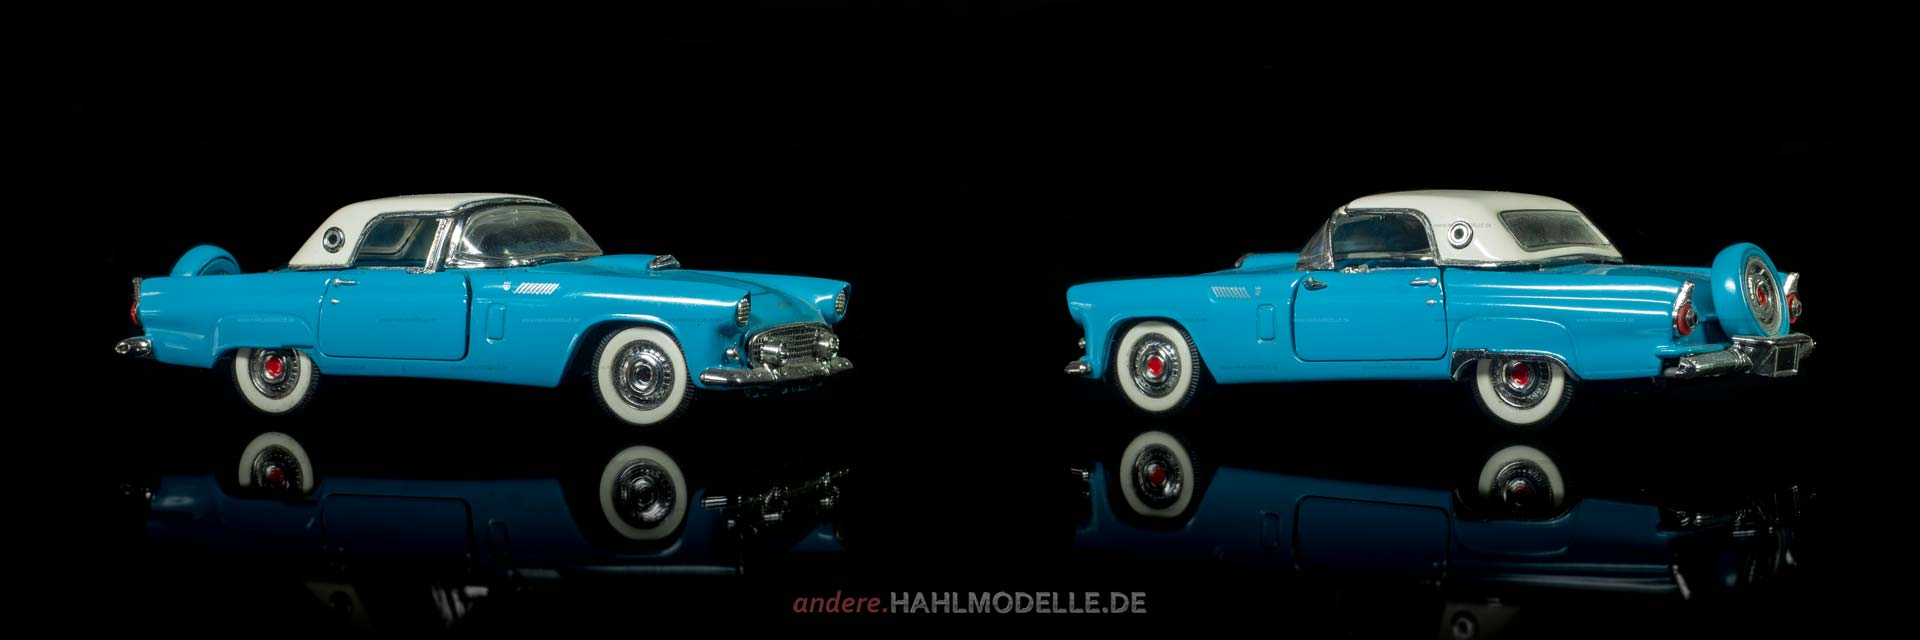 "Ford Thunderbird Convertible Coupé (""Classic Bird"") 